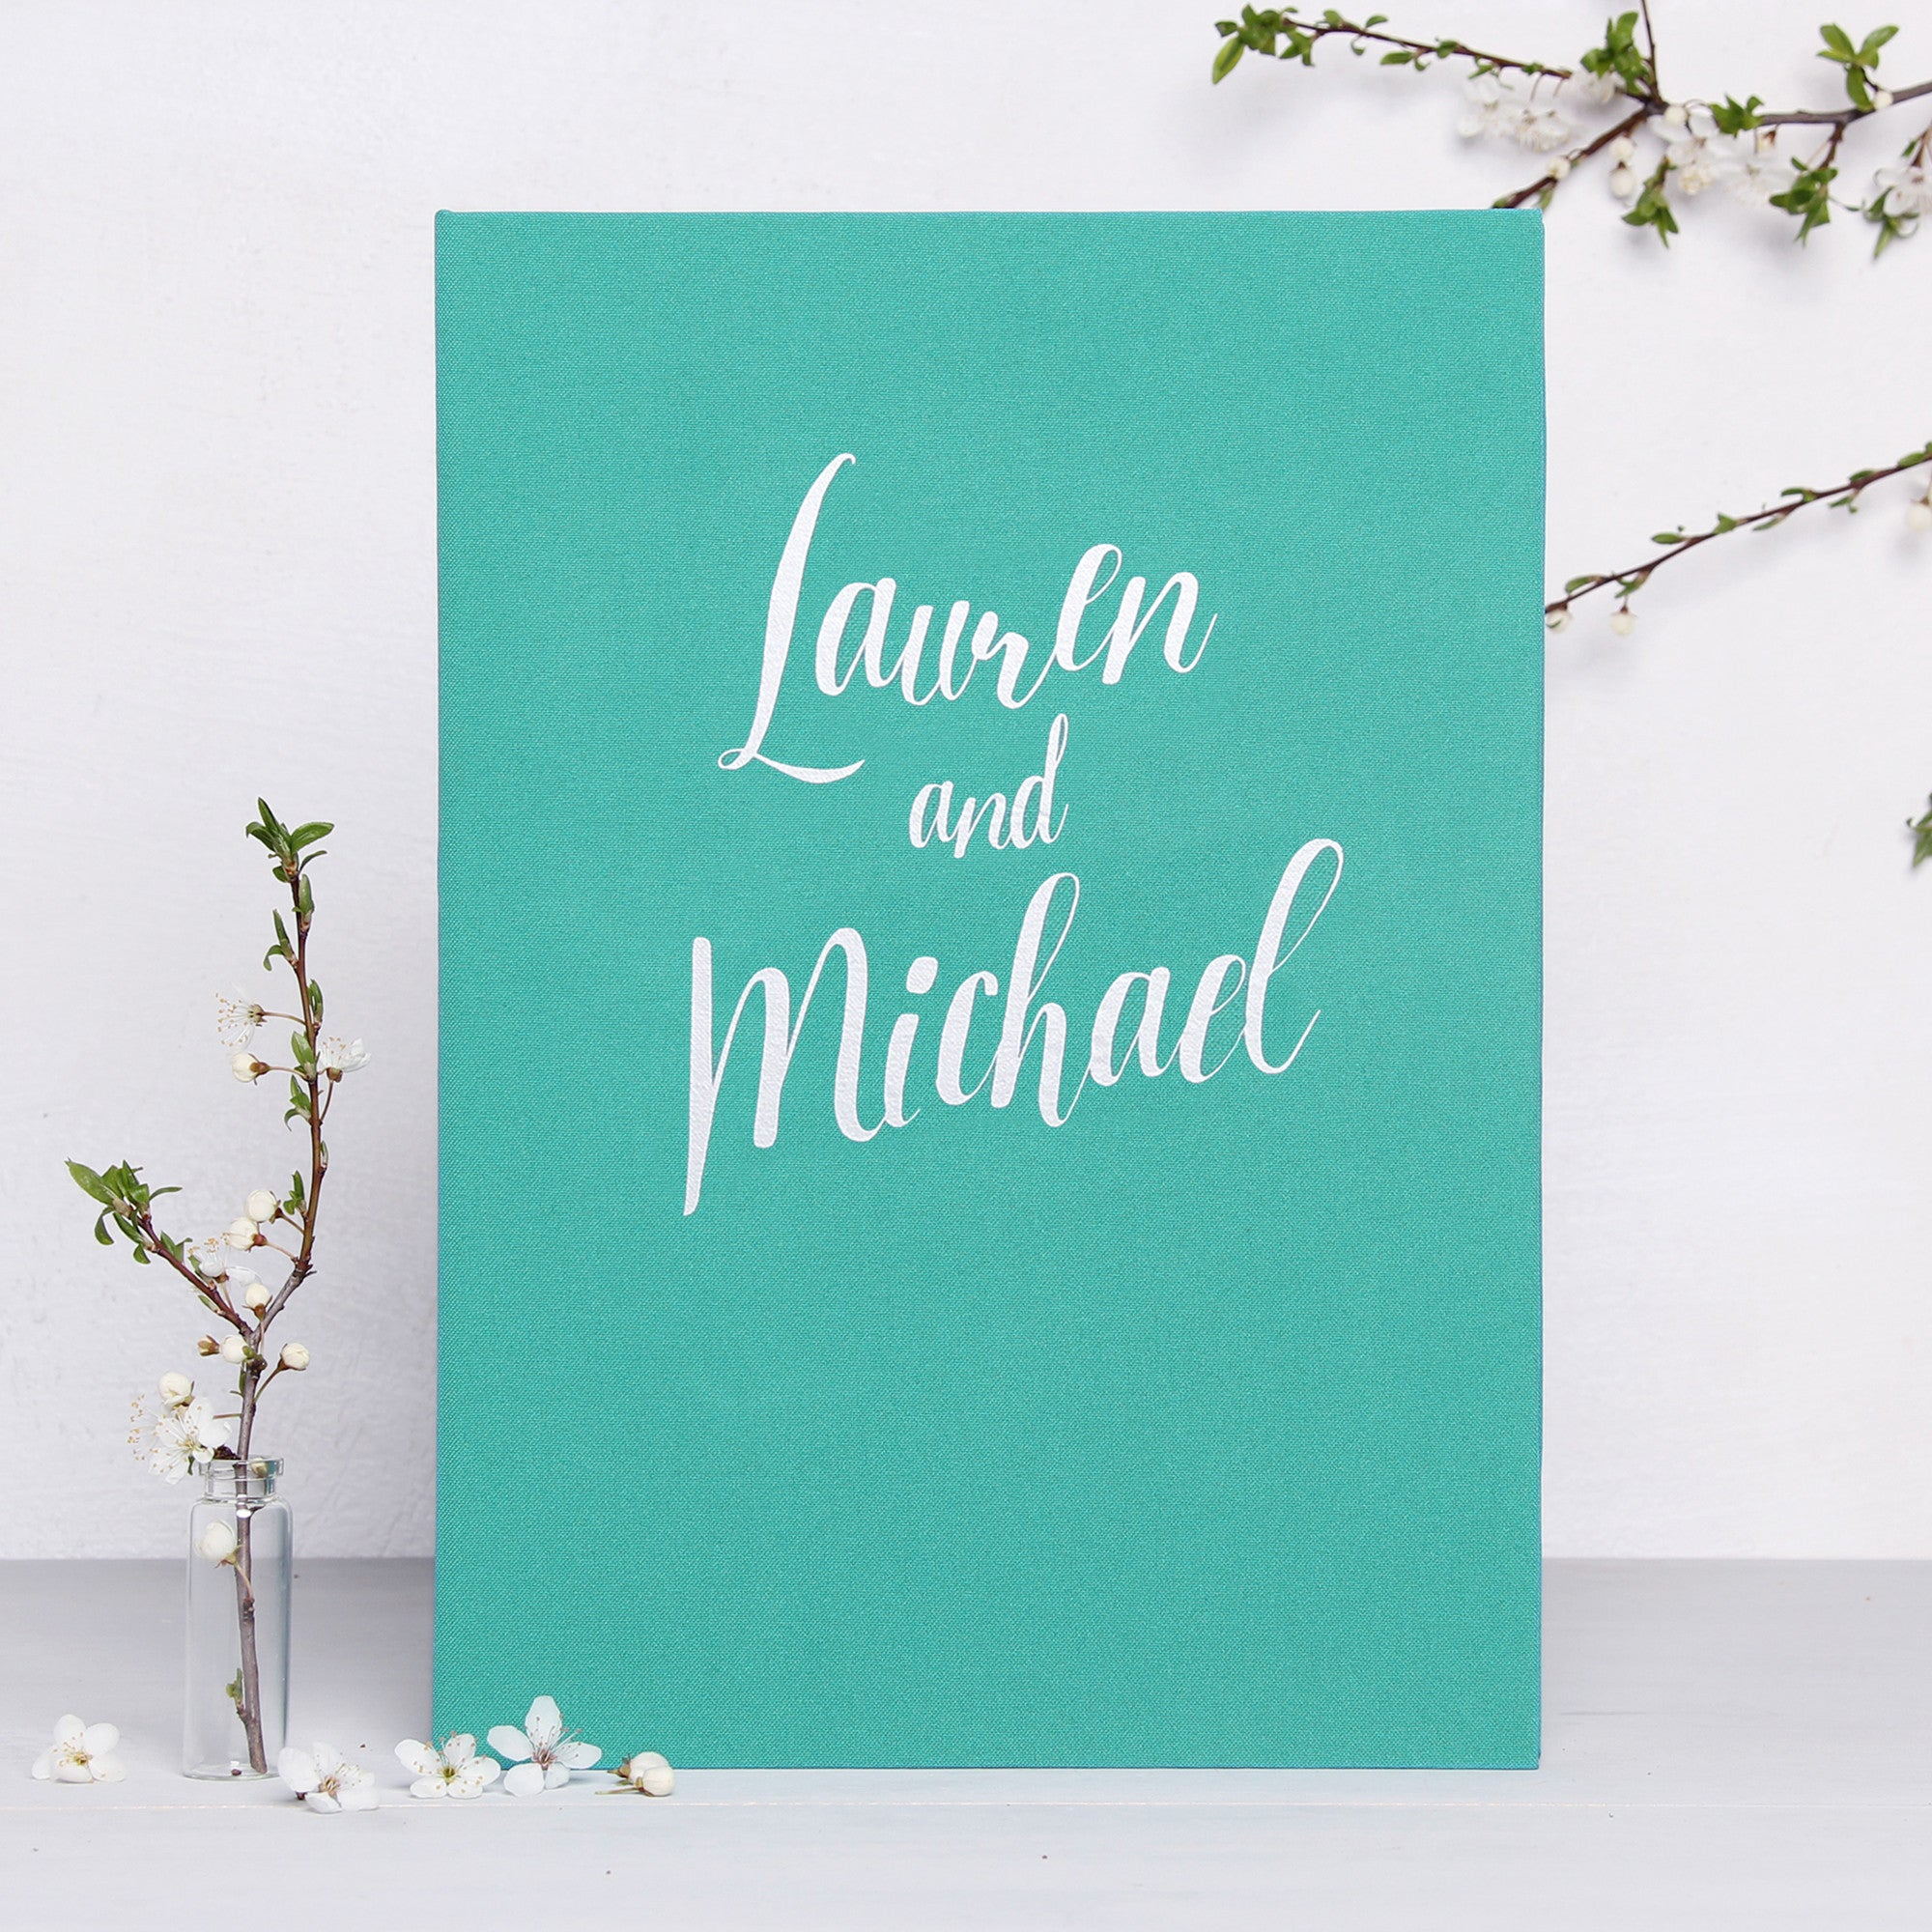 Instax Wedding Guest Book Album Teal Blue with Silver Lettering - Liumy